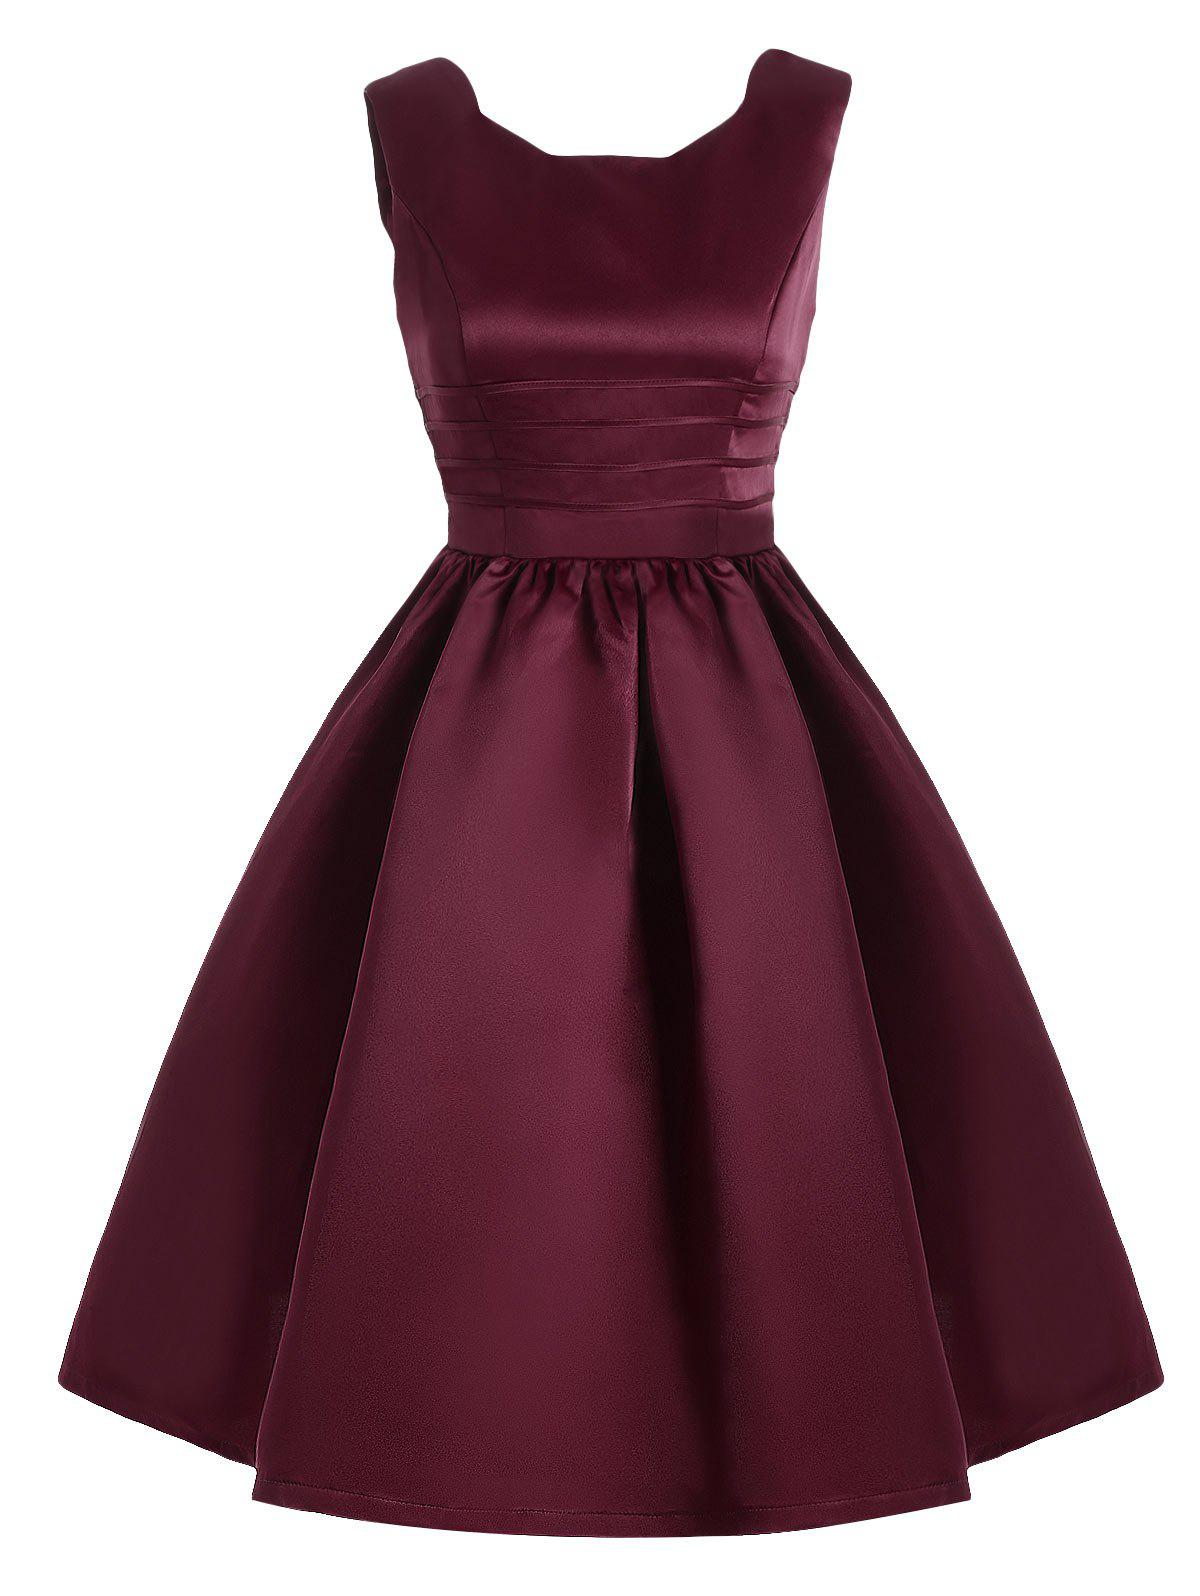 New Sweetheart Neck Vintage Fit and Flare Dress